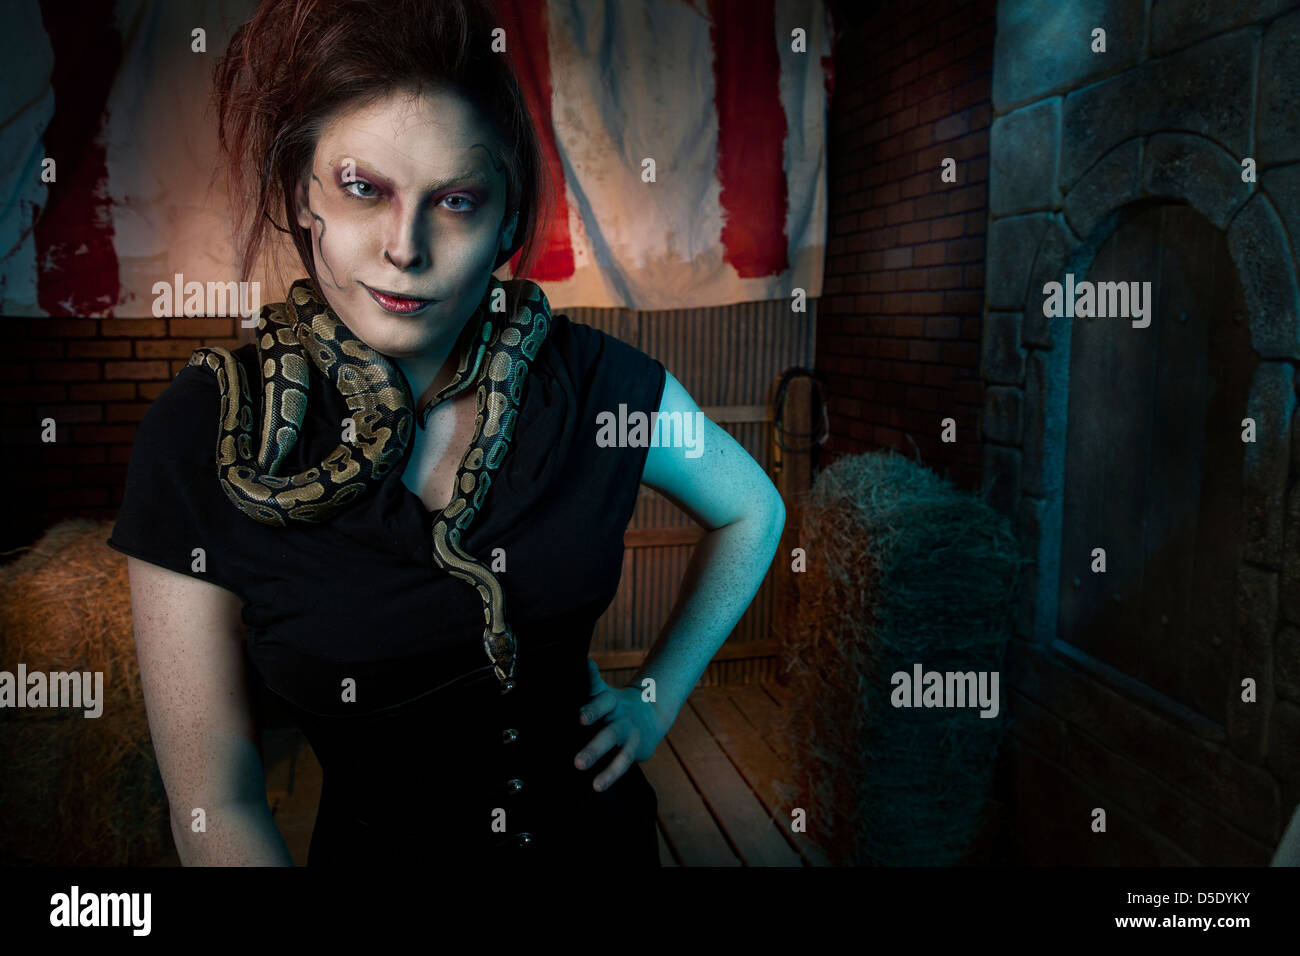 Woman with snakes around neck in tented dark alley - Stock Image